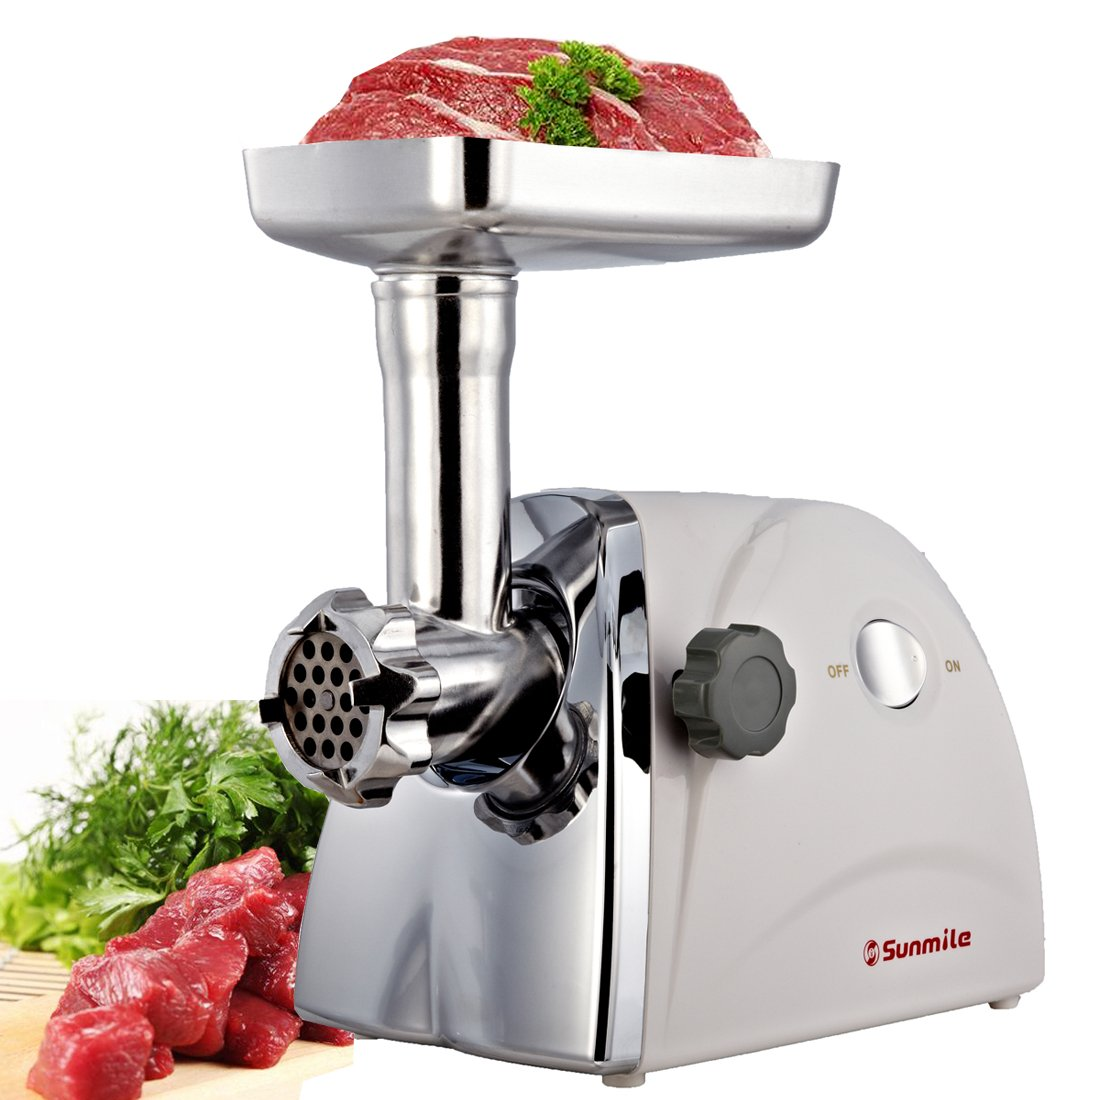 Sunmile sm-g31 etl electric meat grinder and sausage stuffer maker